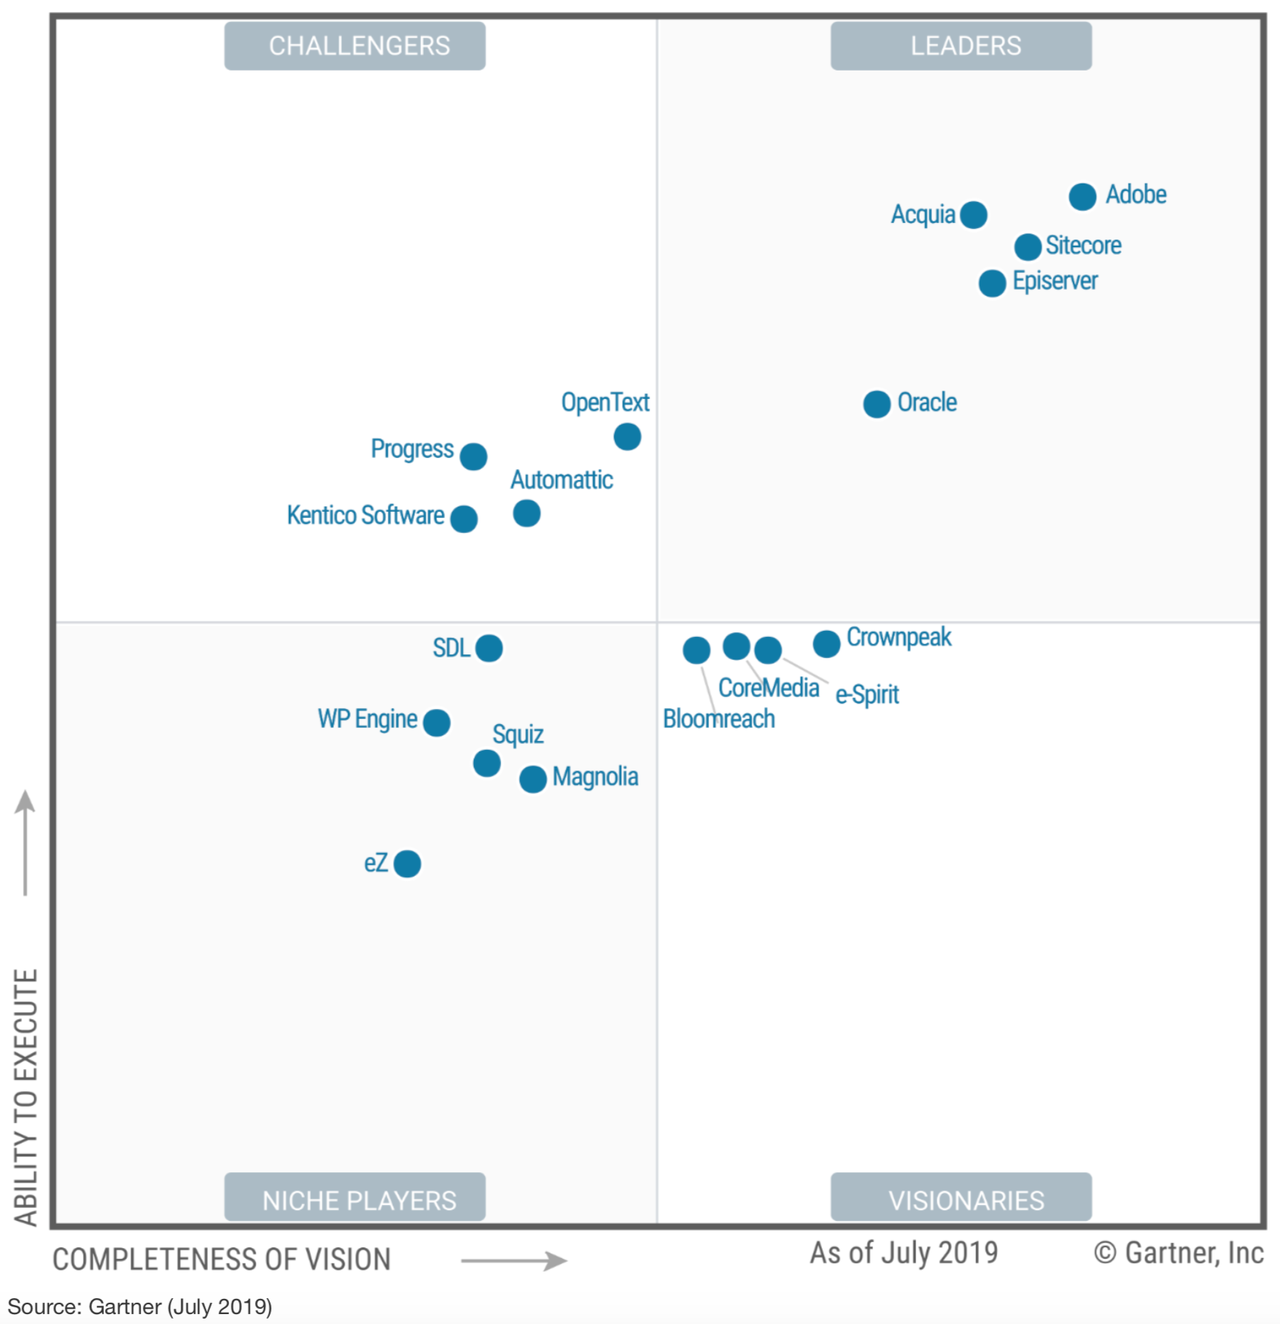 Gartner magic quadrant for Web Content Management Systems